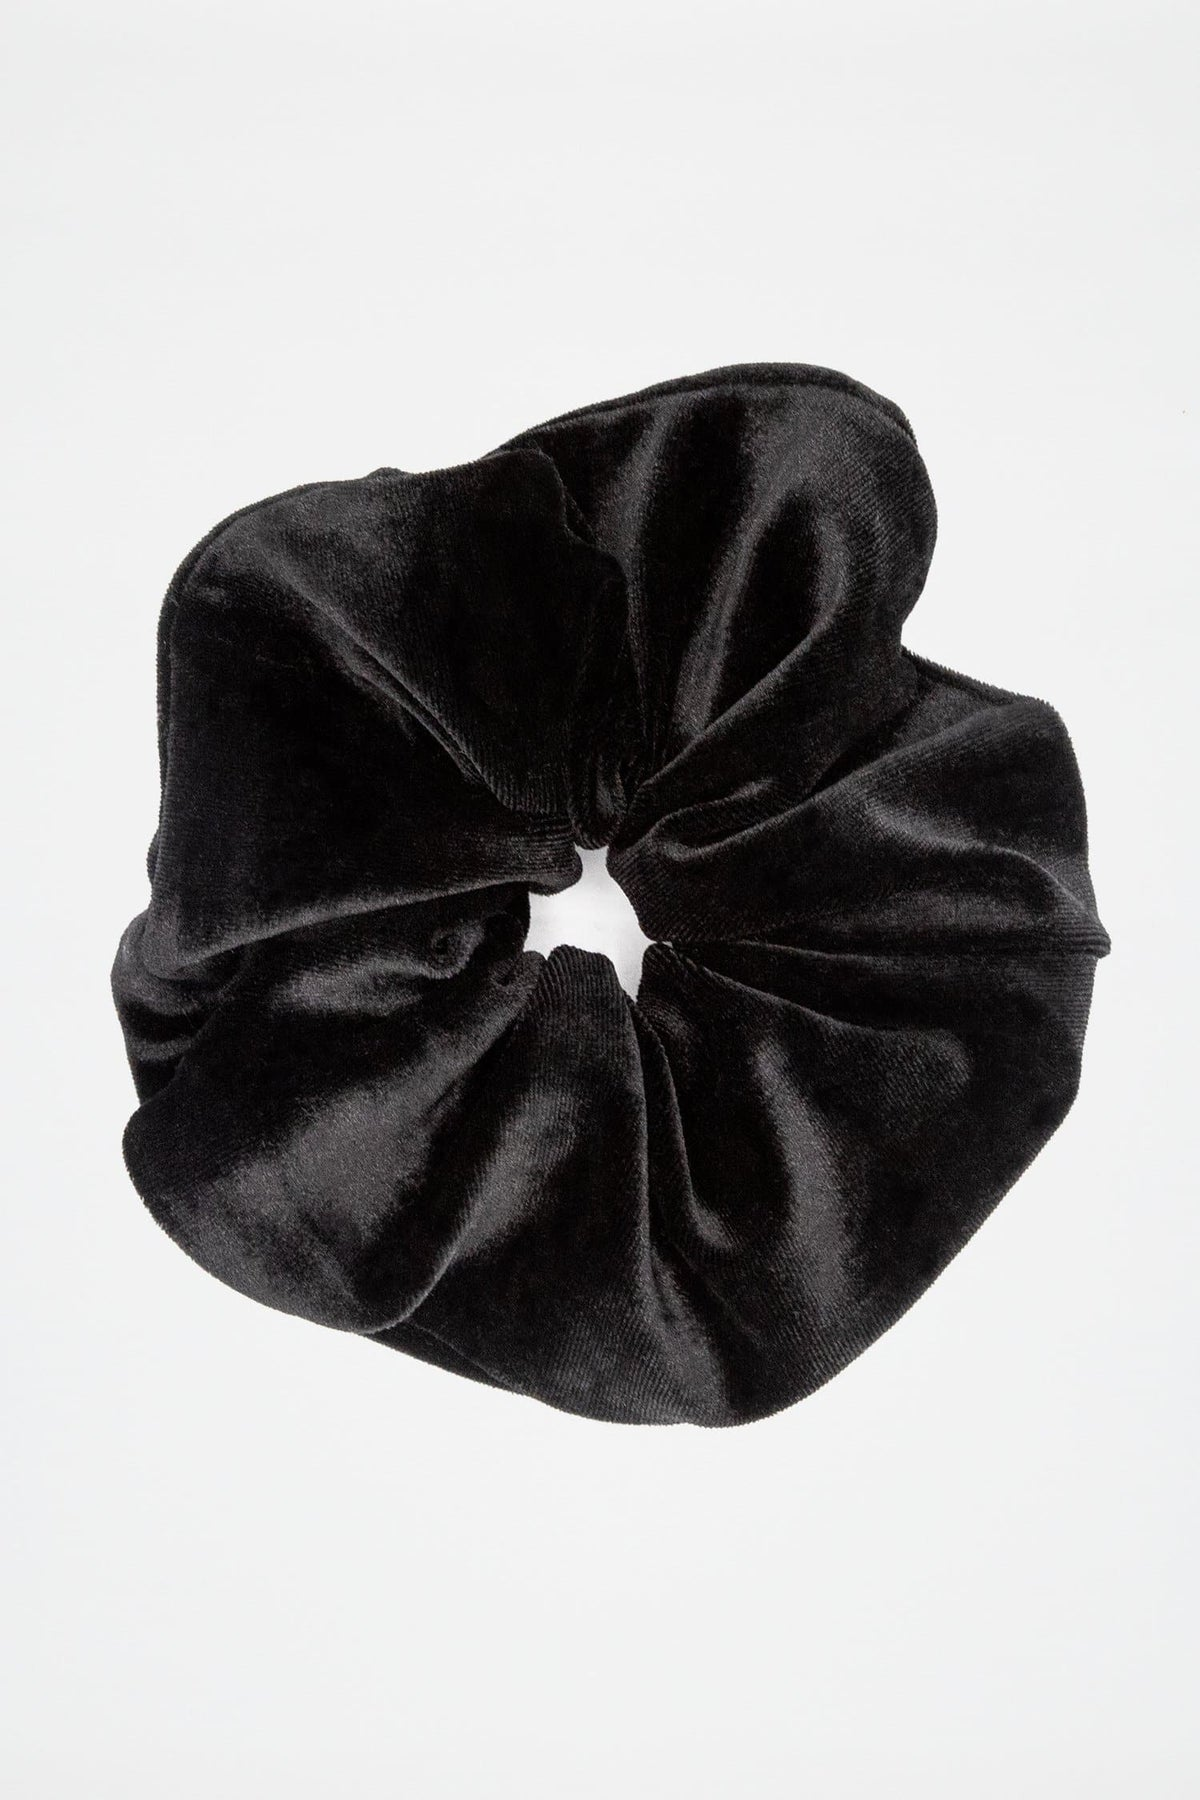 VVTSCRUNCH - Oversized Velvet Scrunchie